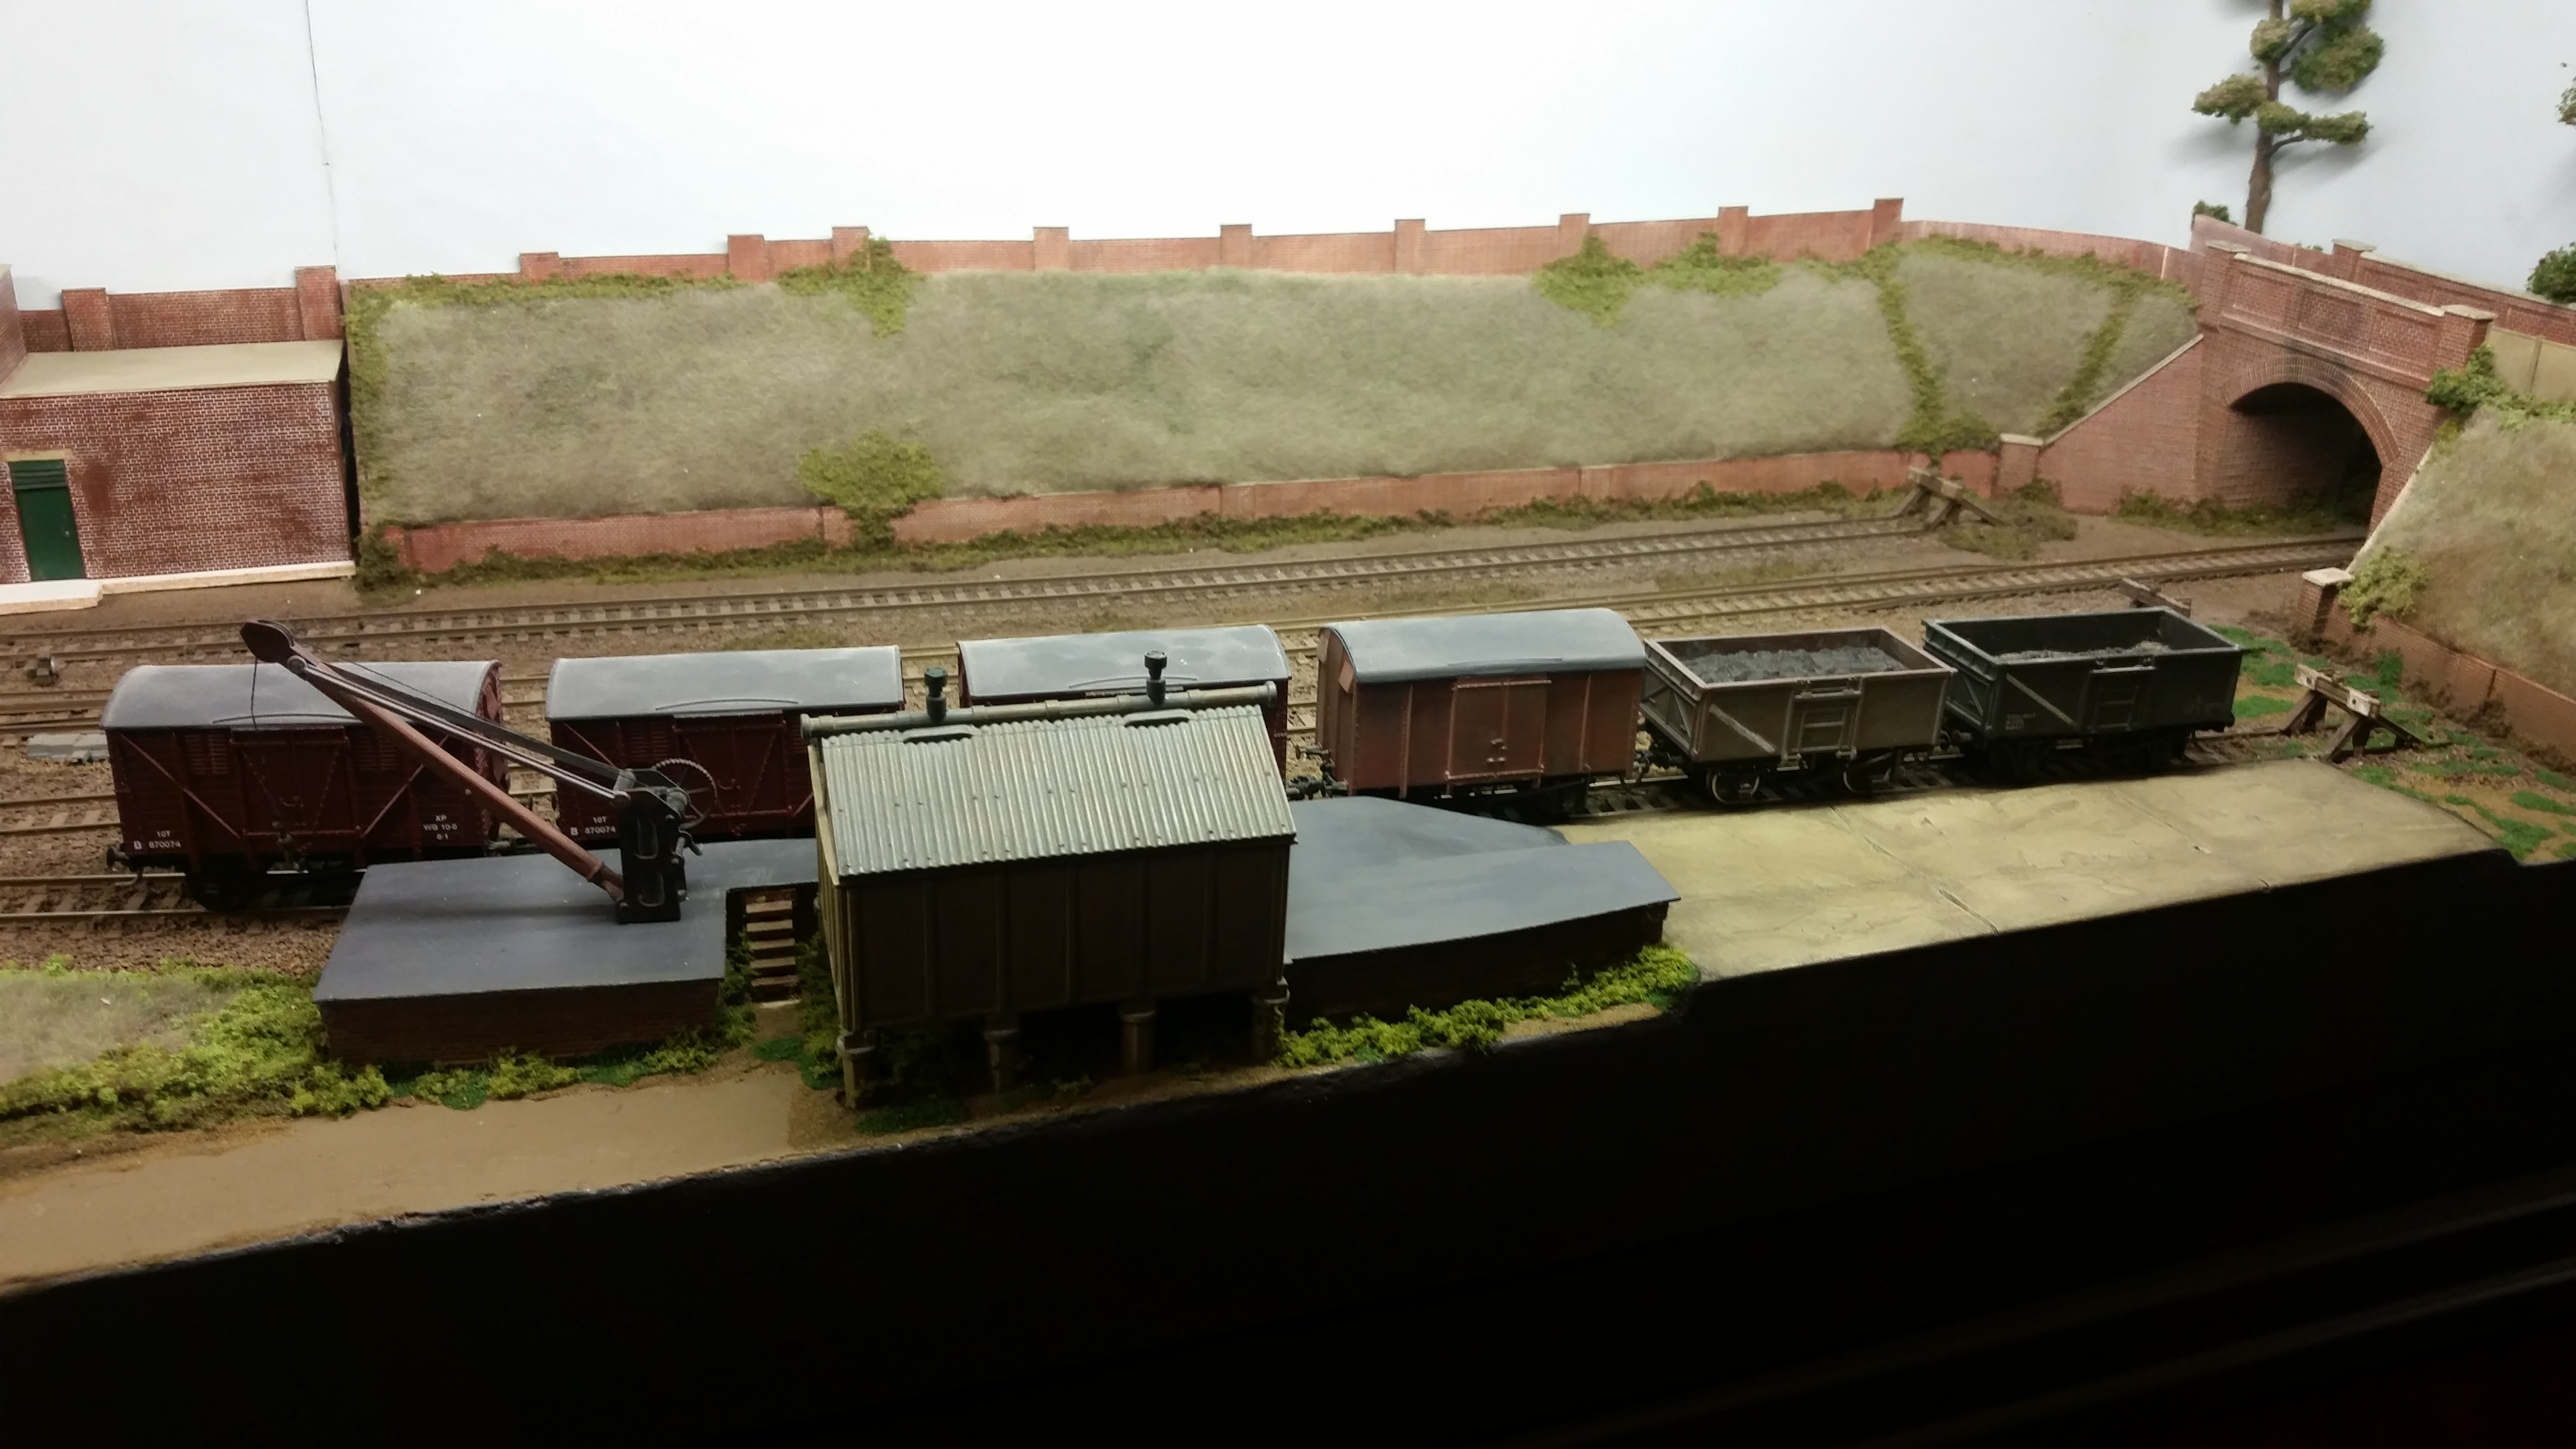 A view of the new goods yard sidings